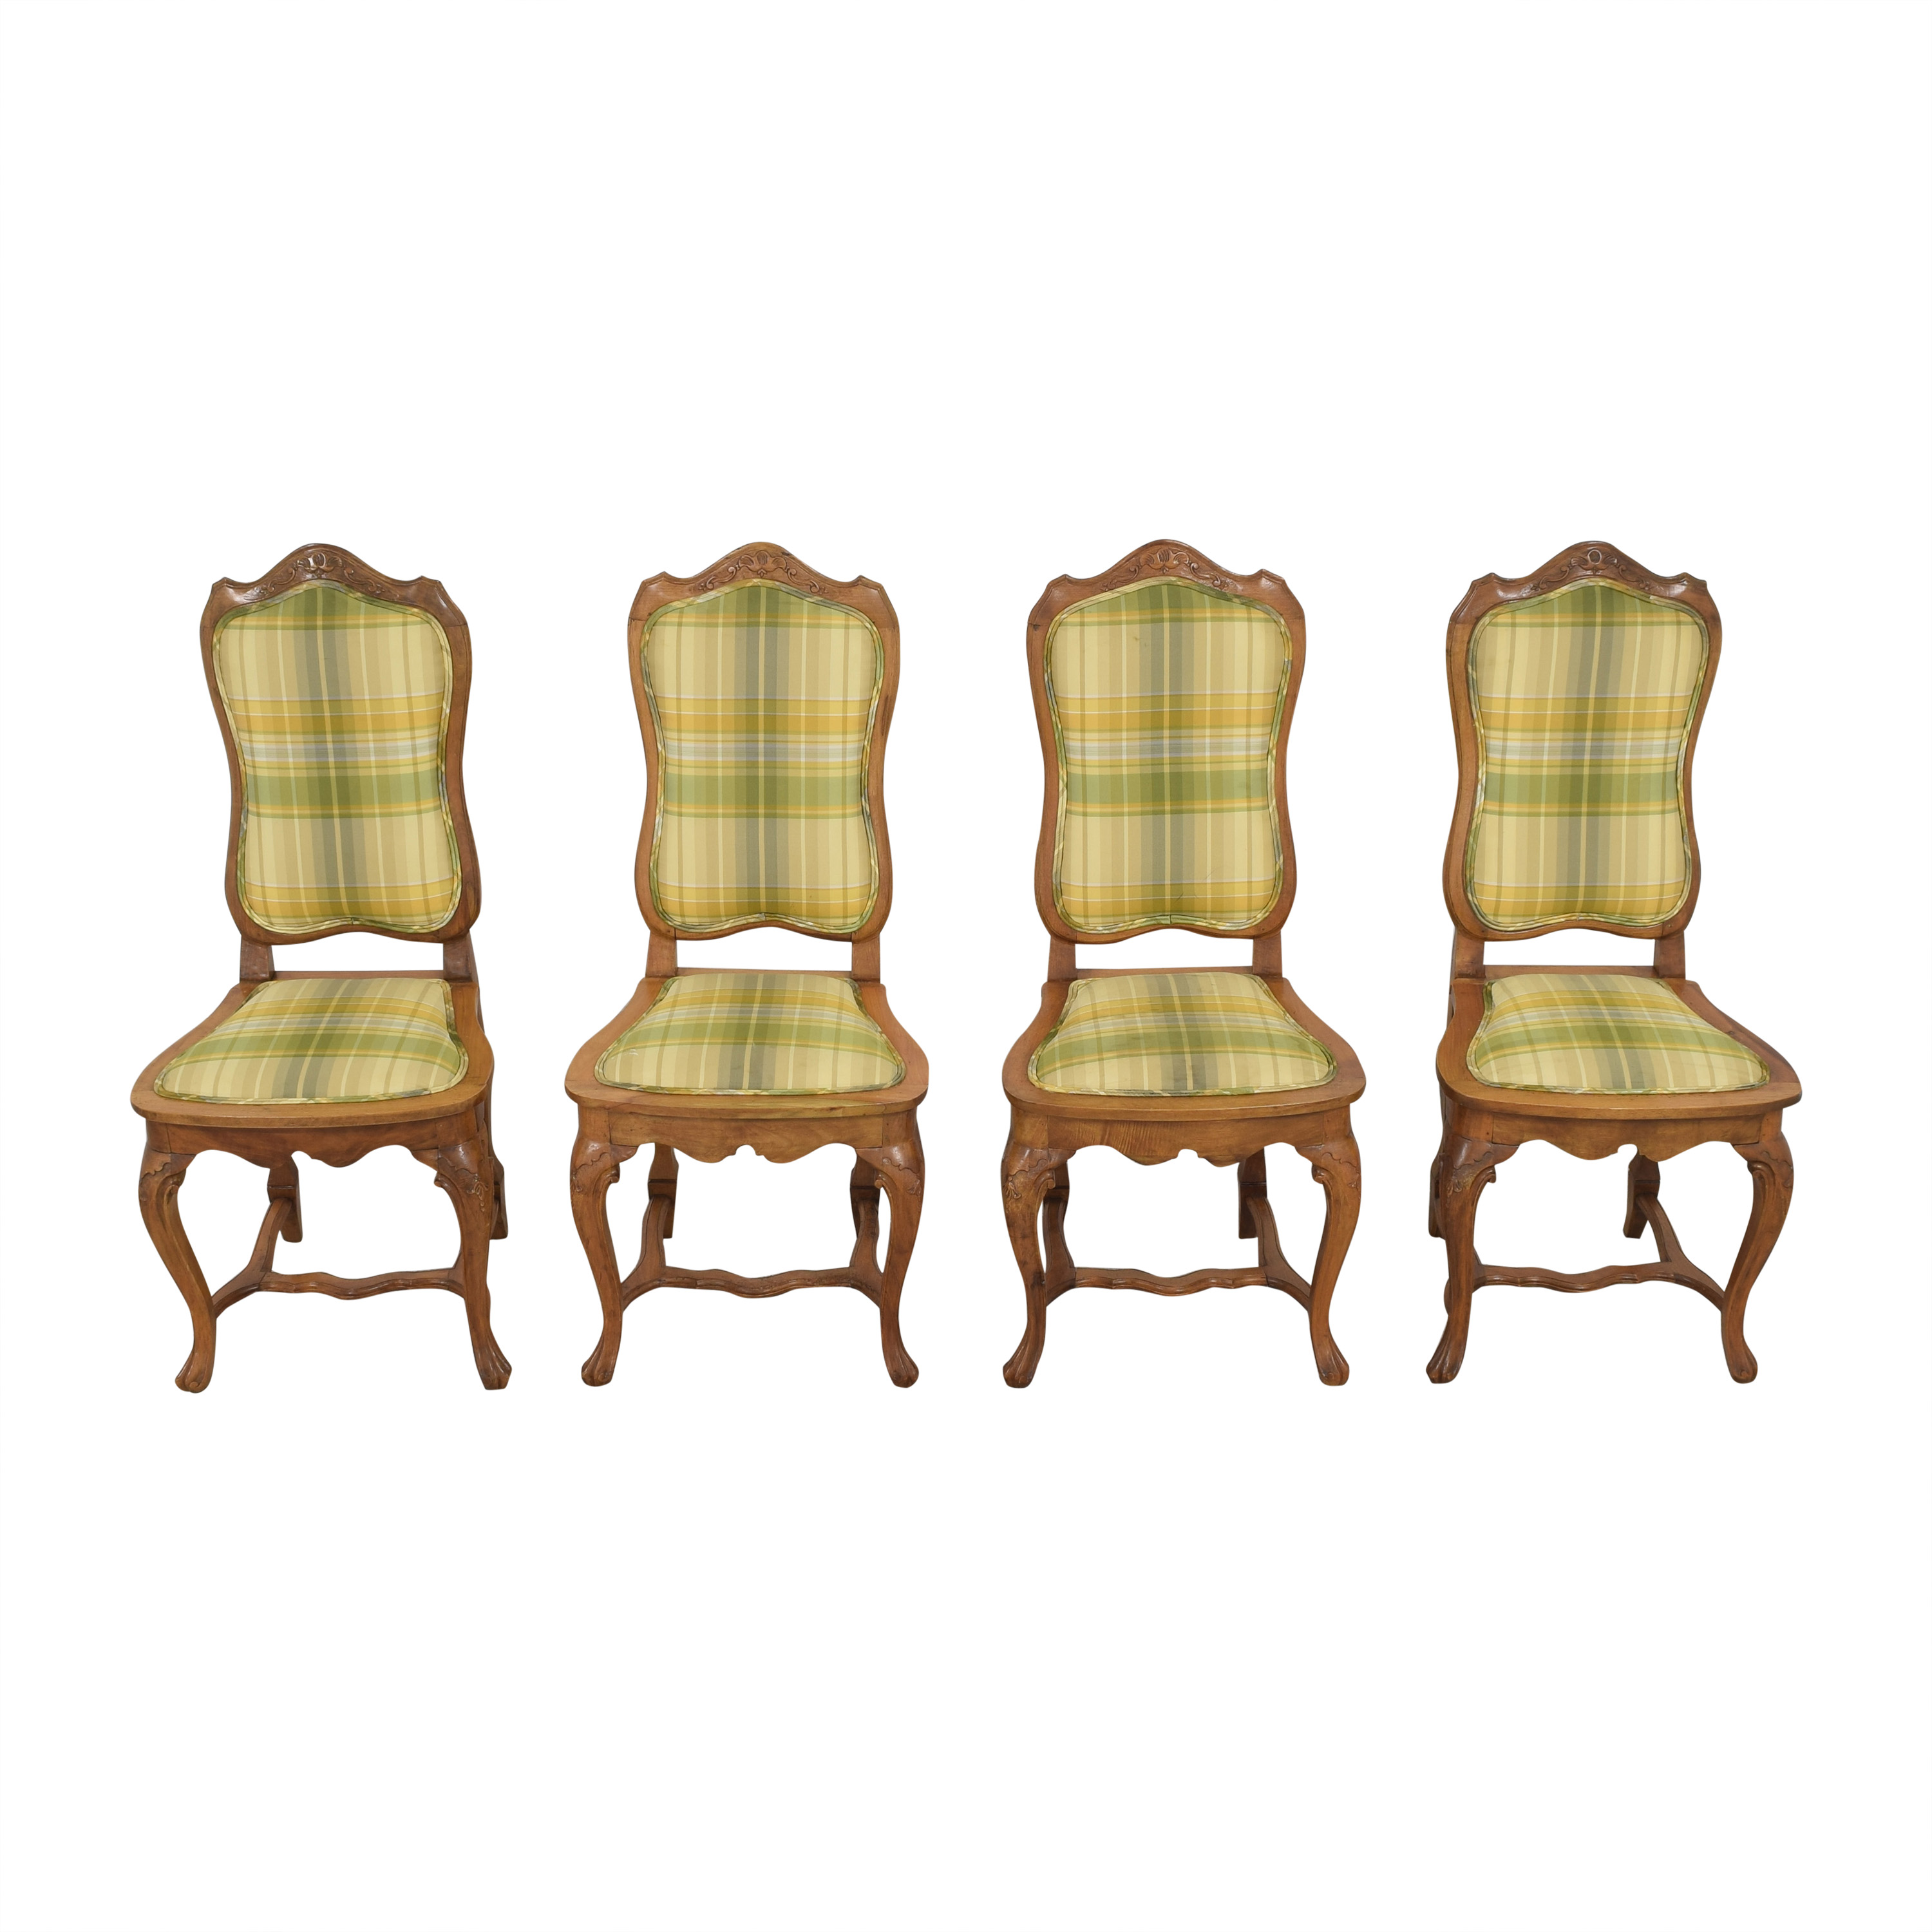 Italian Upholstered Dining Chairs dimensions